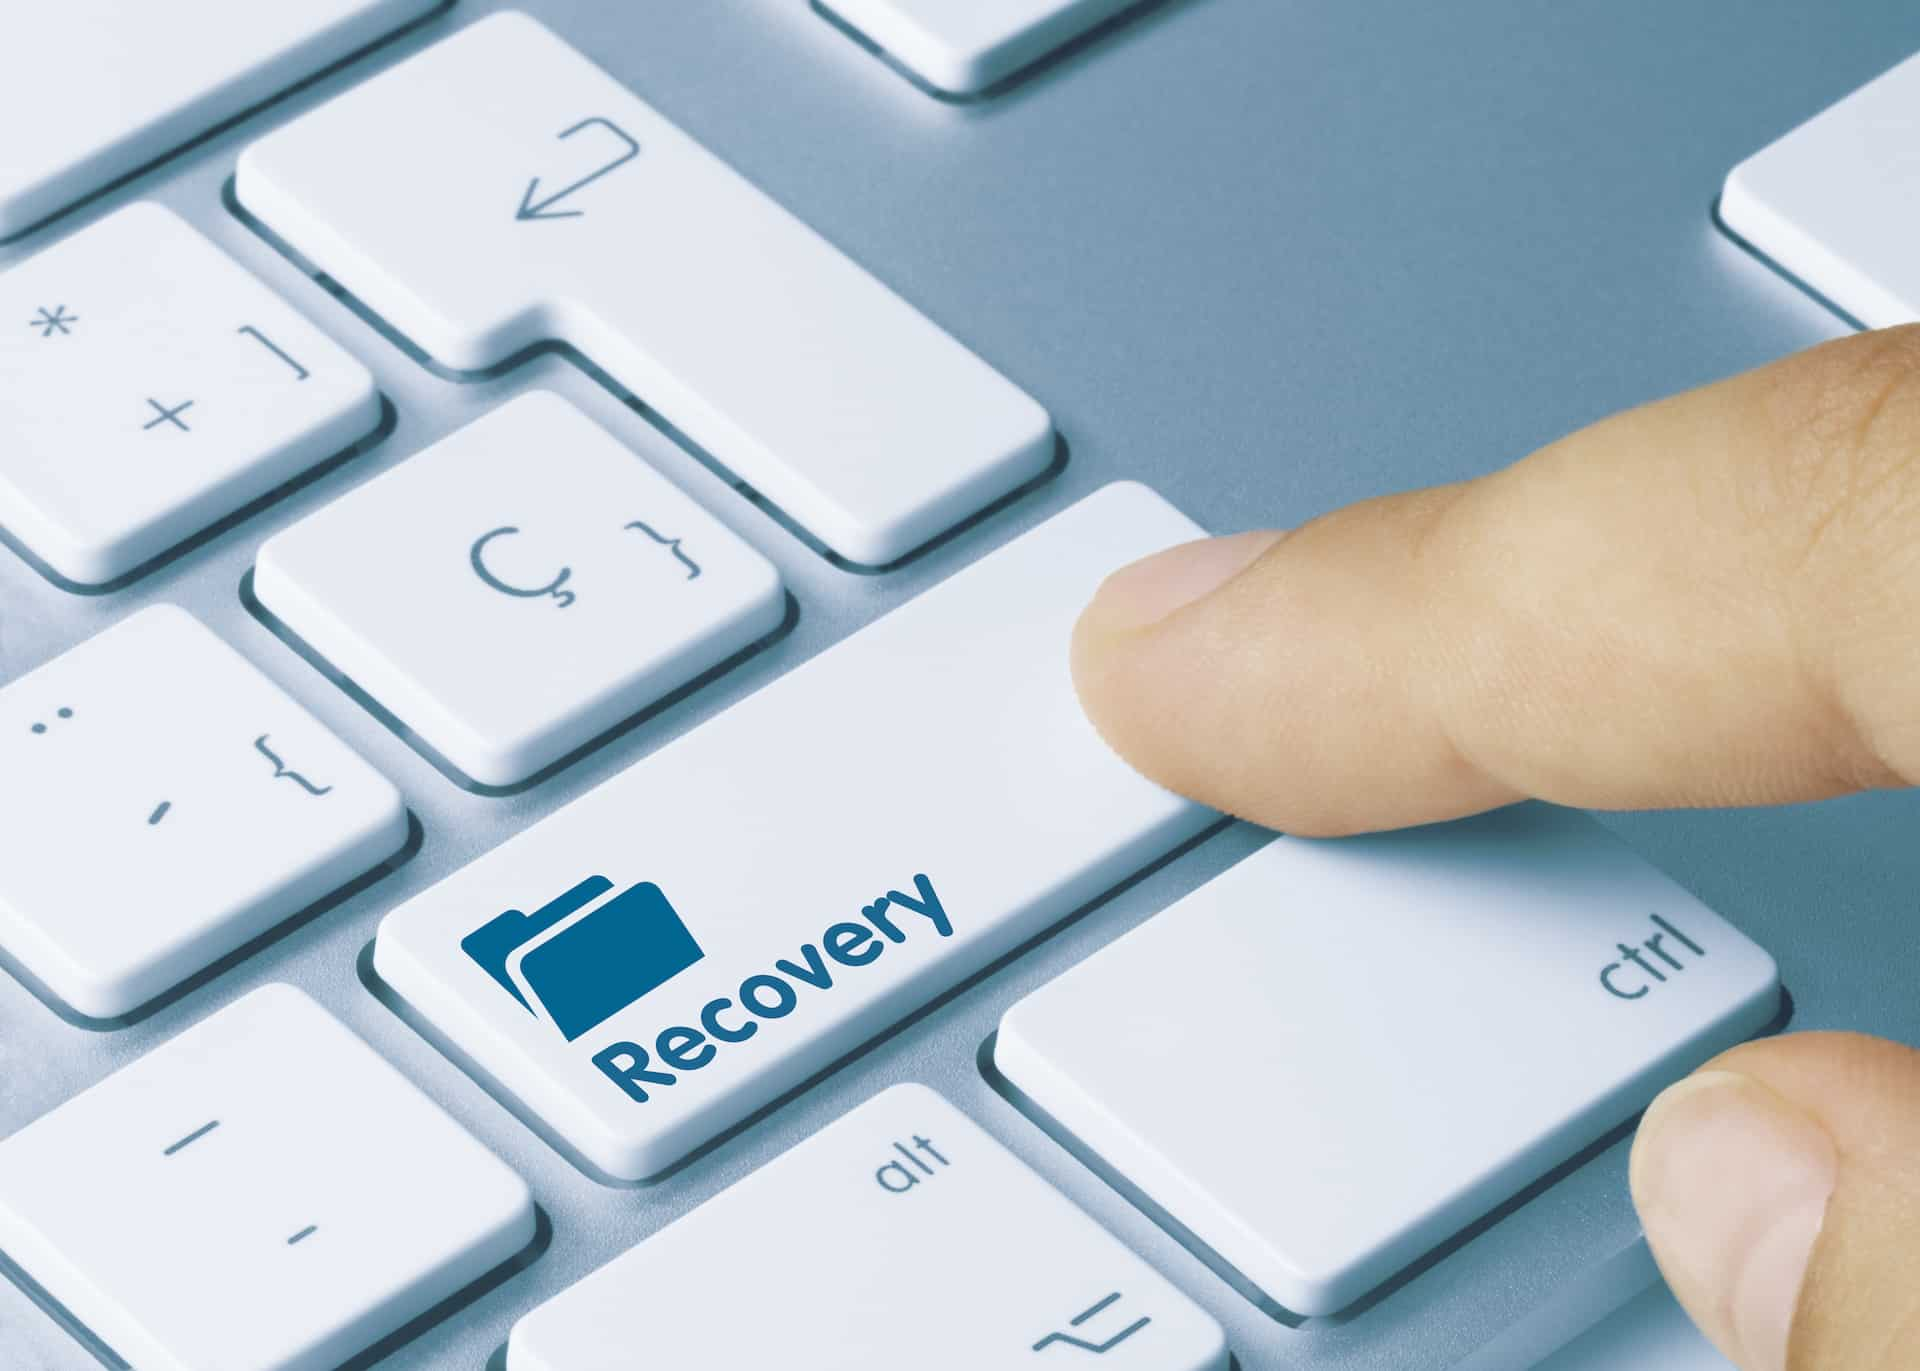 Microsoft released Windows File Recovery Tool to help recover deleted data